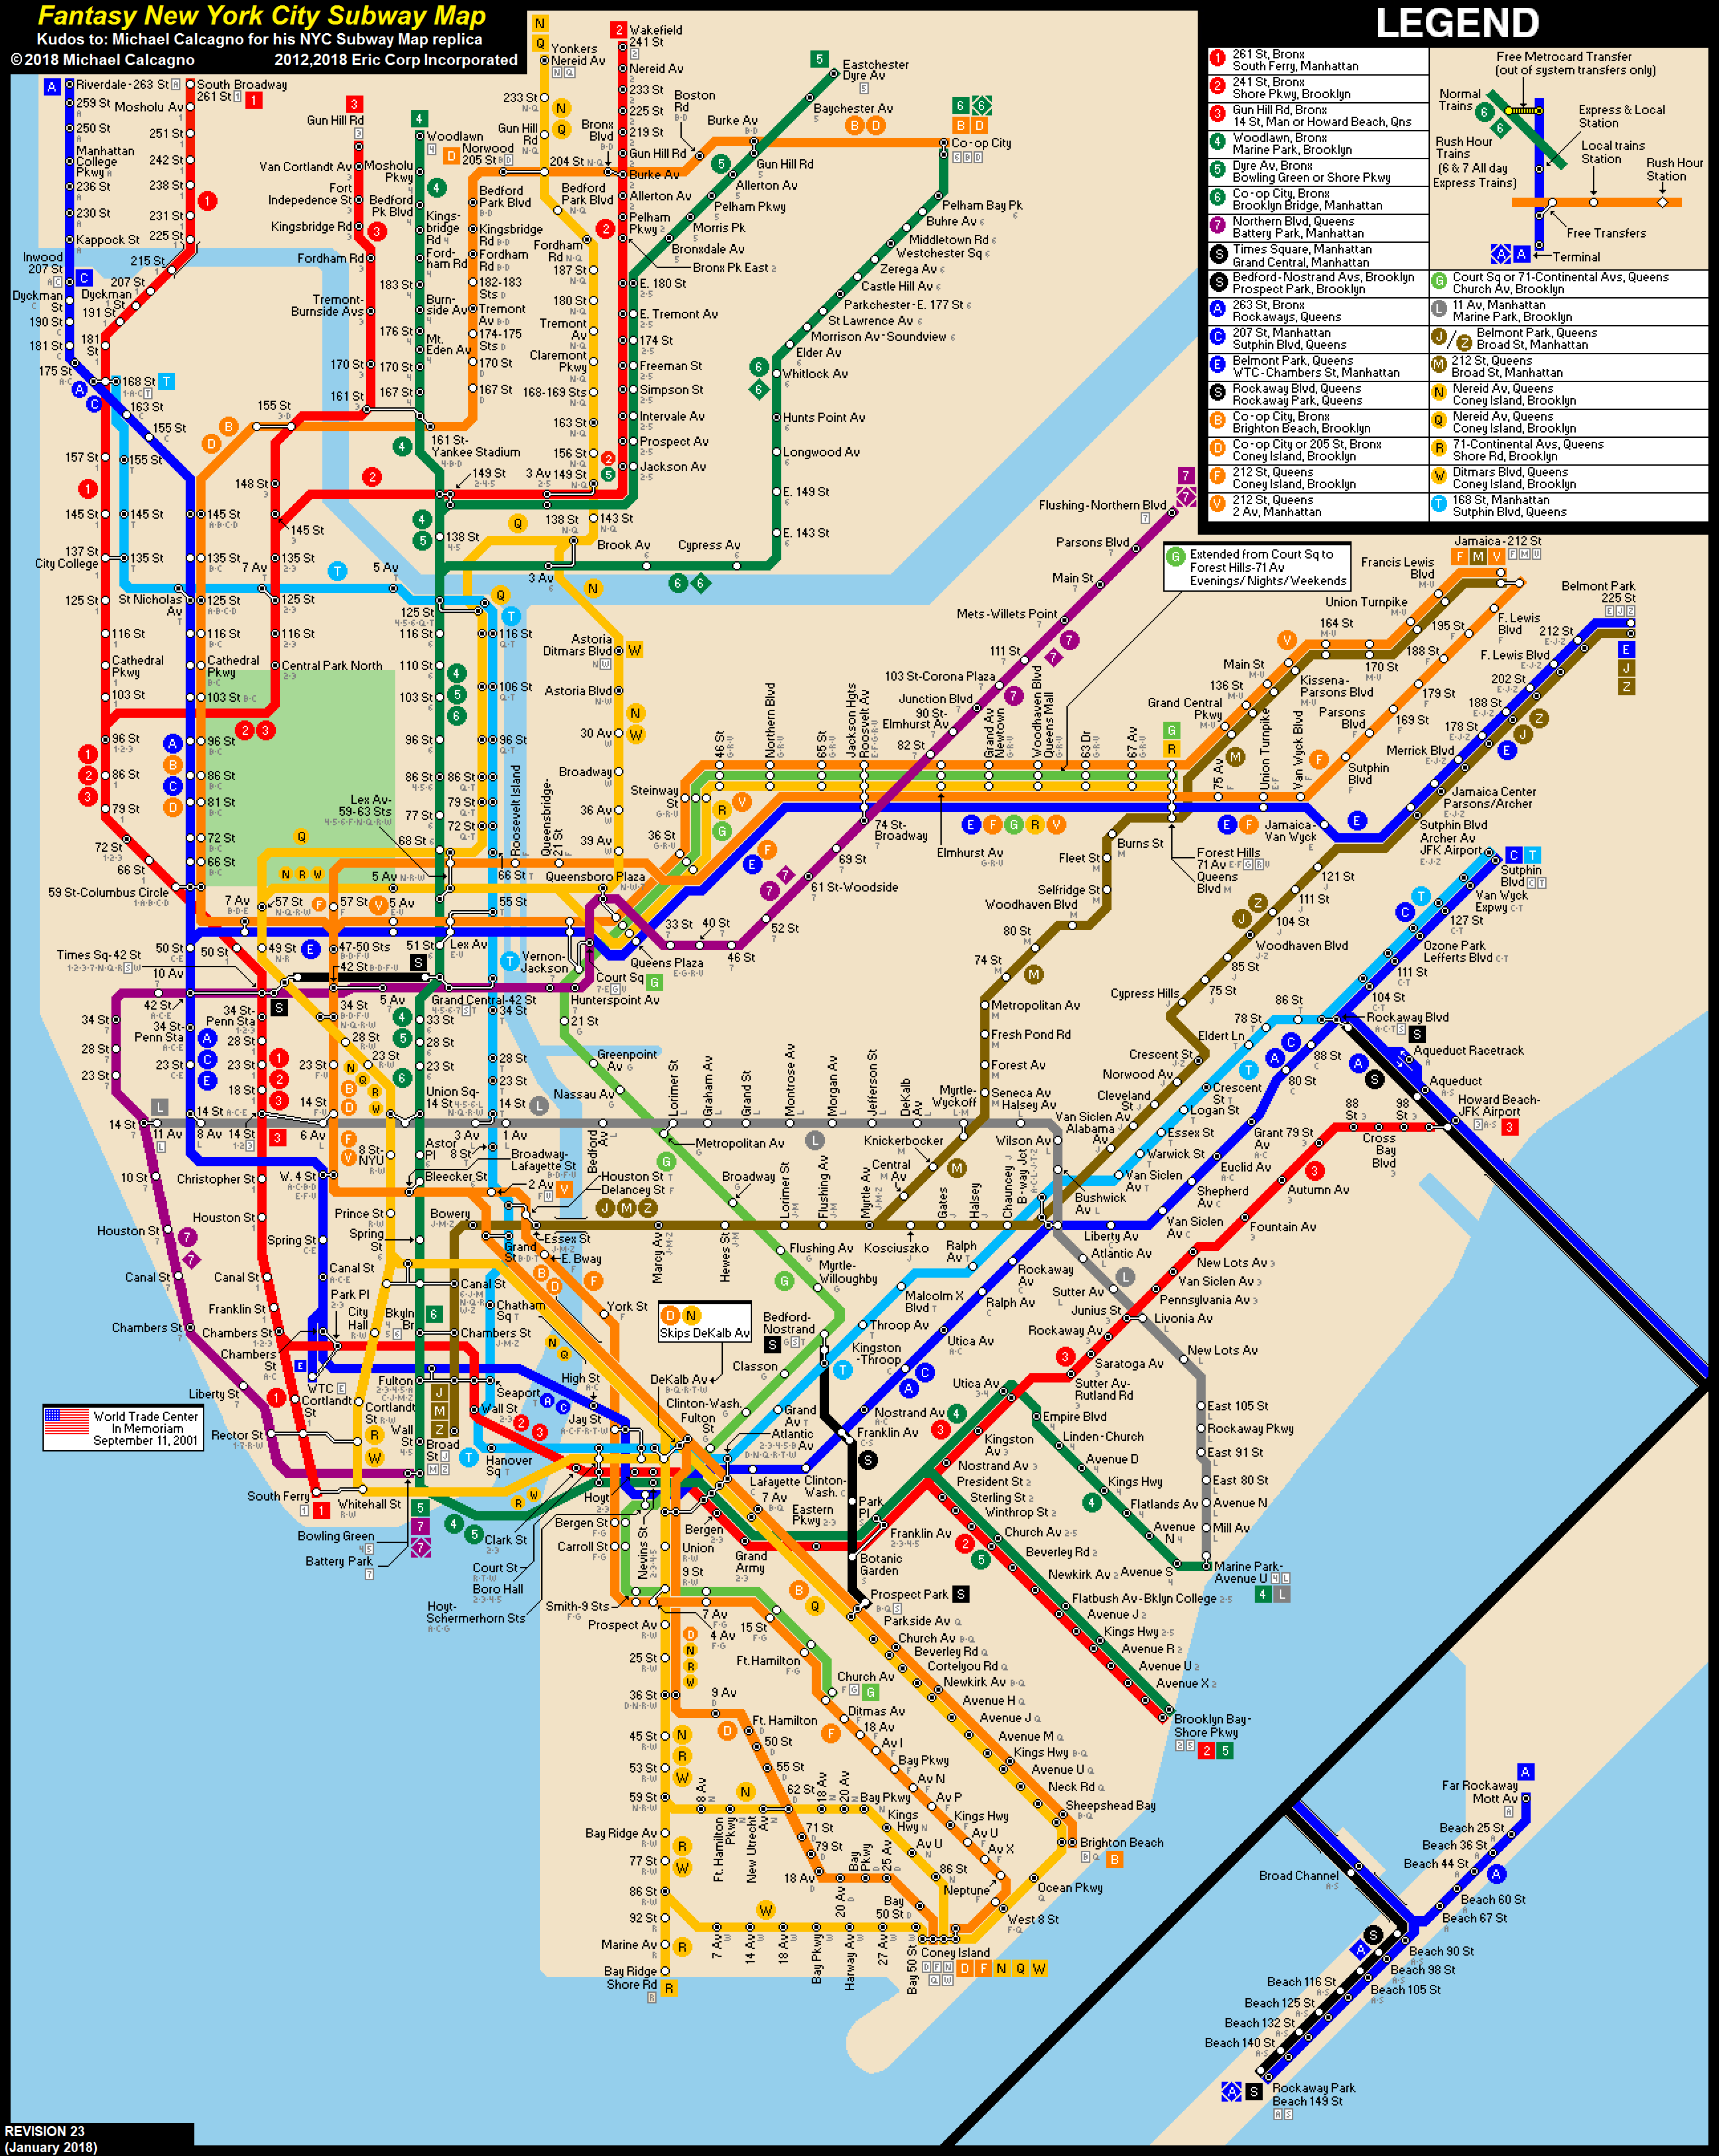 NYC Subway Fantasy Map (Revision 23) by ECInc2 on DeviantArt on brooklyn battery tunnel map, path map, lirr map, san francisco municipal railway map, nycta map, north railroad map, bus map, wmata map, amtrak map, septa map, metro map, central park map, nyc map, queens plaza map, nj transit map, new jersey transit map, marc map, cta map, mbta map, staten island map,